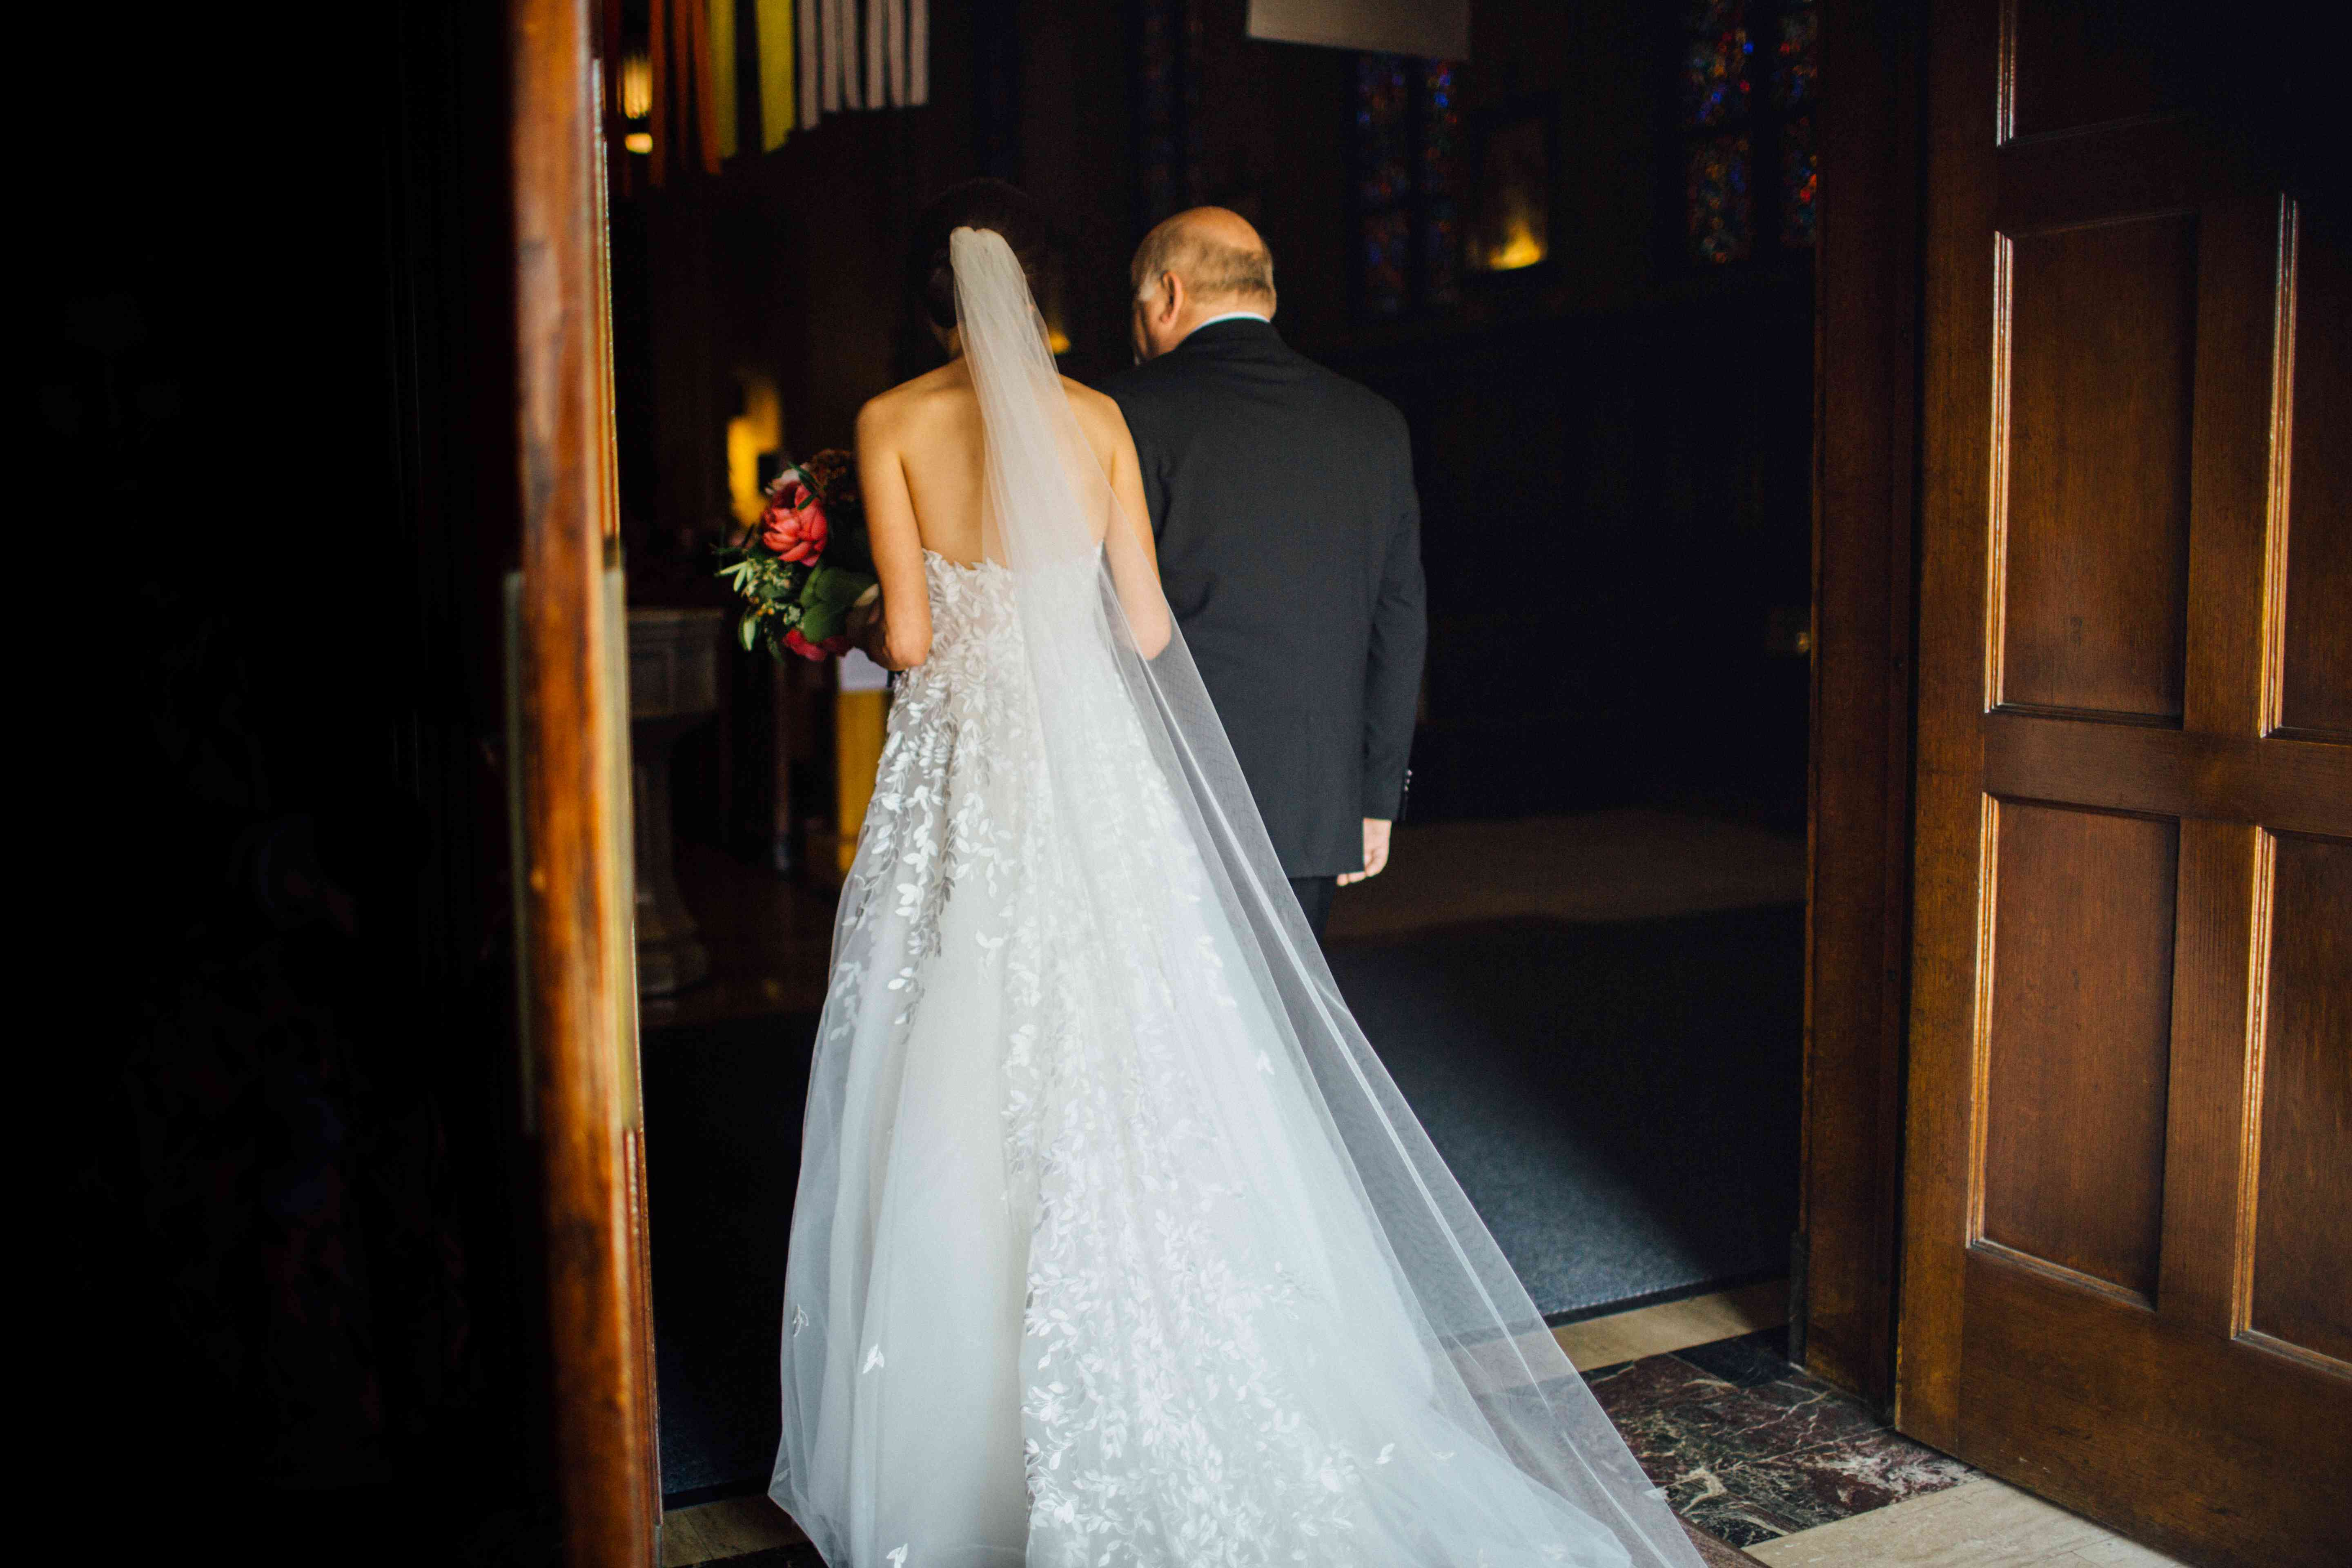 <p>Bride and Father-of-the-Bride</p><br><br>